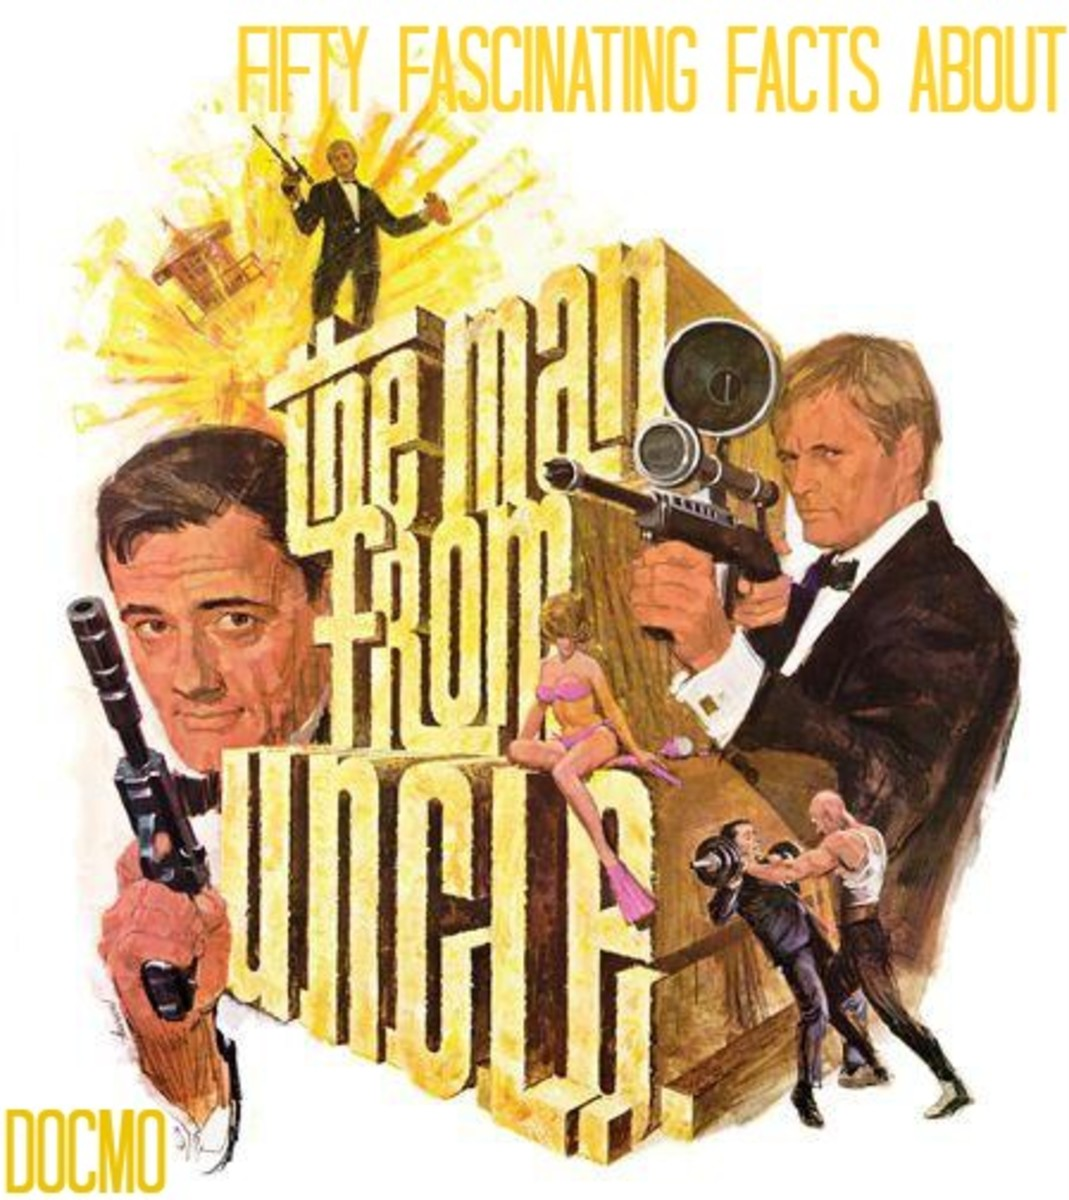 Fifty Fascinating Facts about The Man from U.N.C.L.E